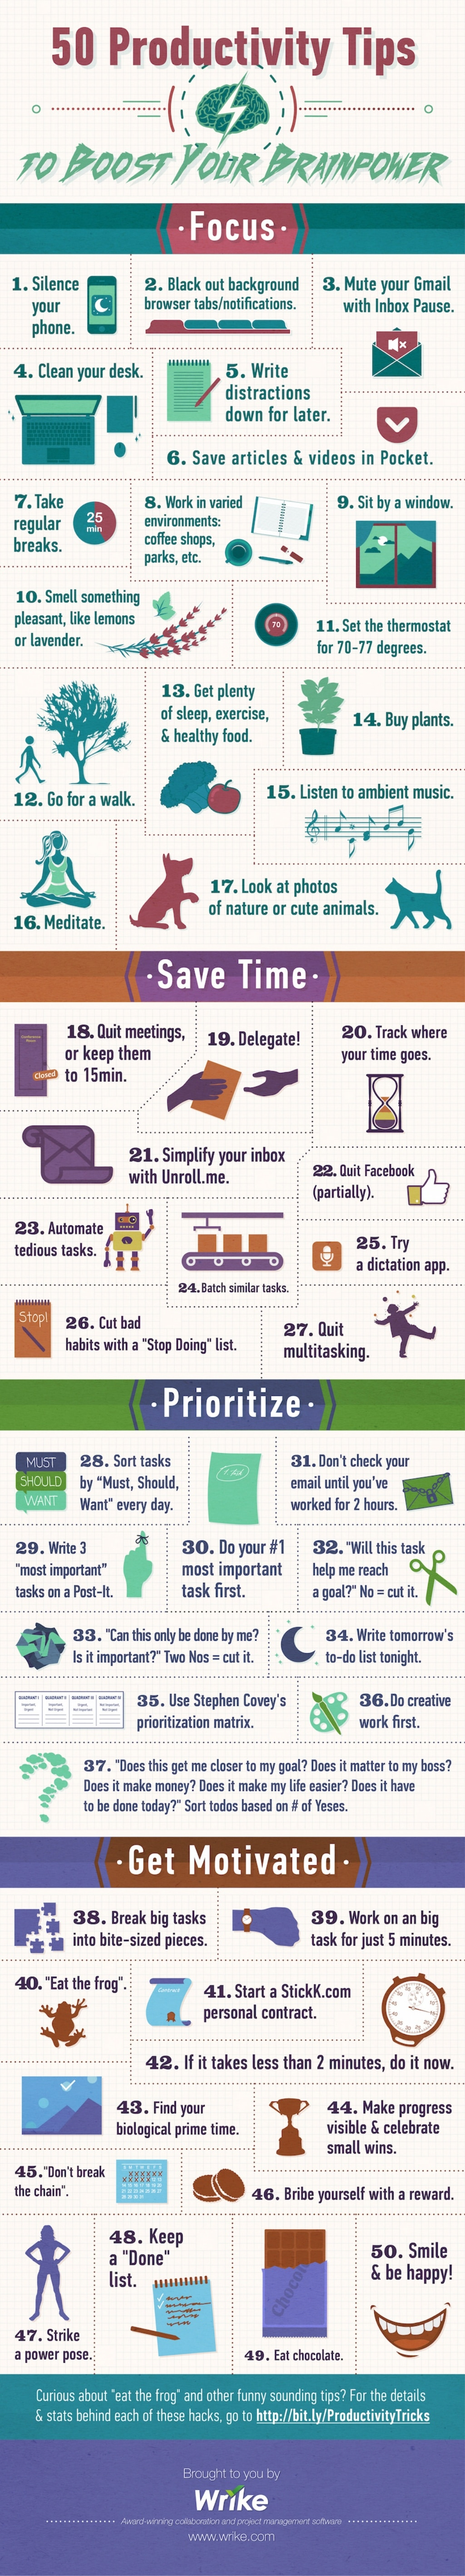 50 Productivity Tips Brainpower Infographic